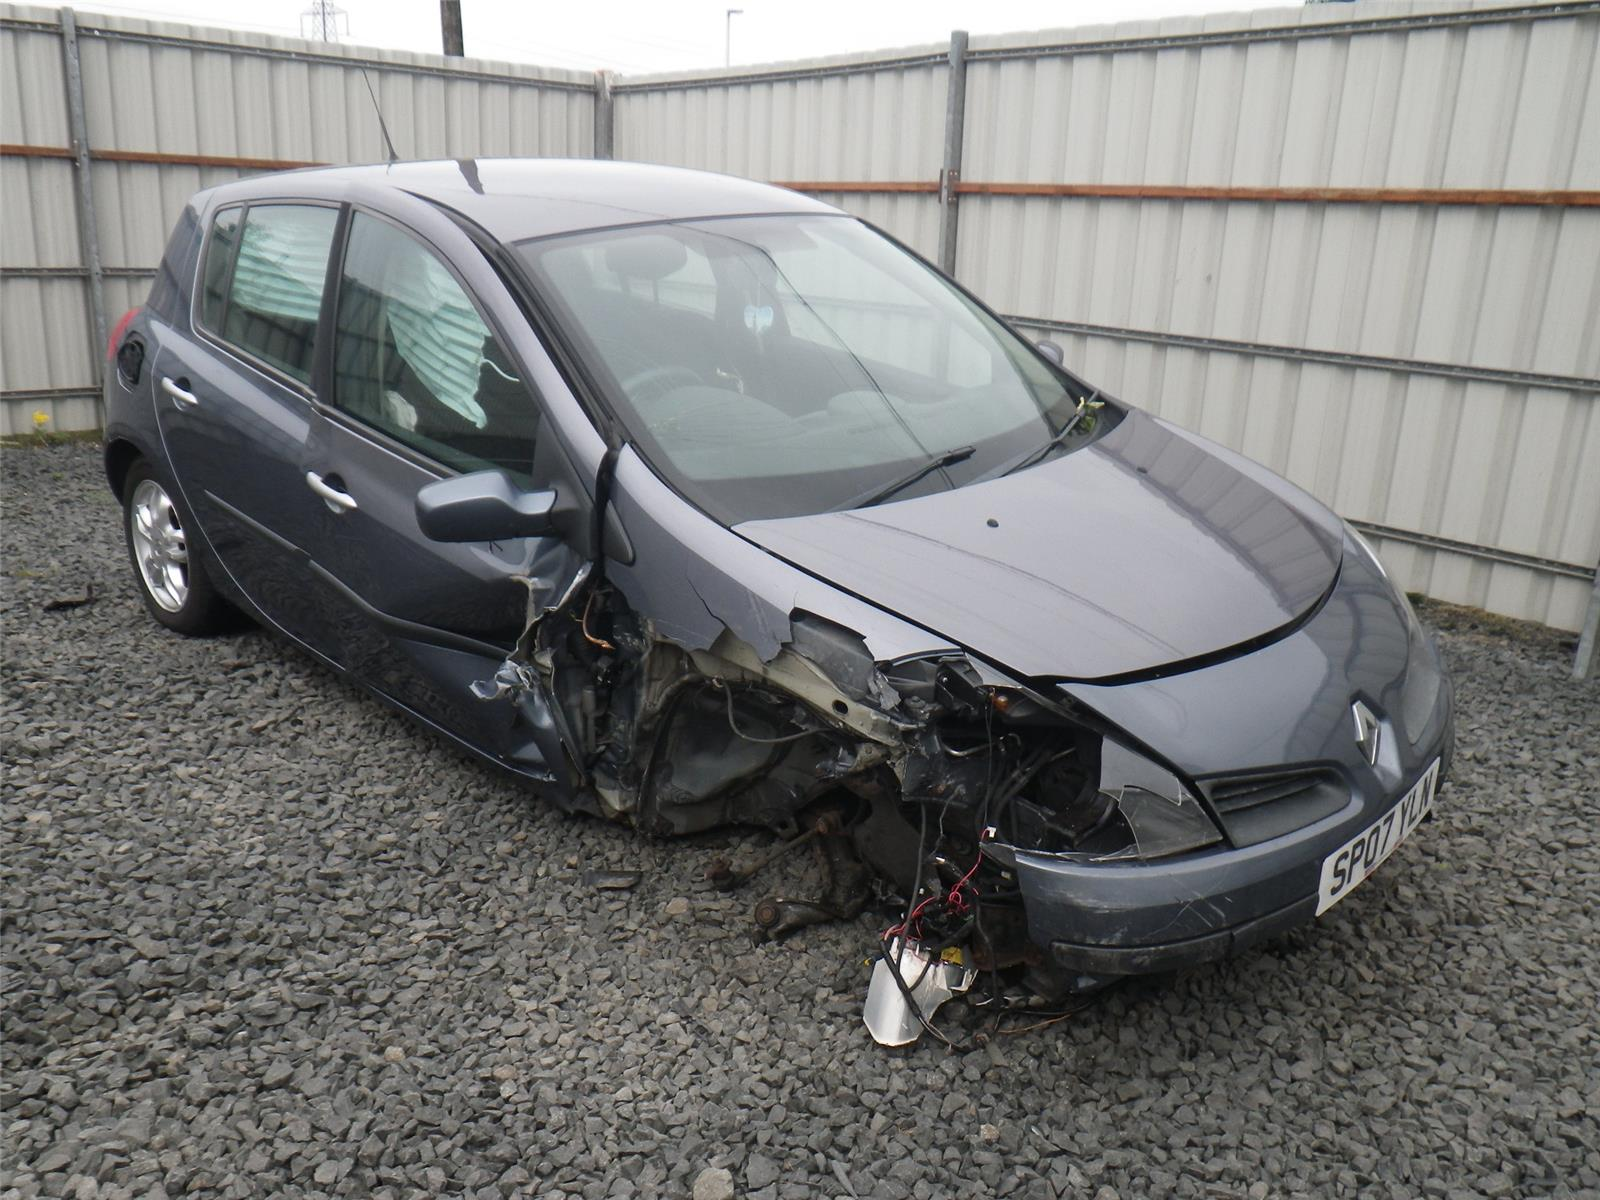 Fuse Box Renault Clio 2009 Control Wiring Diagram On A 2006 To Diesel Manual For Sale From Rh Scbvehicledismantlers Co Uk